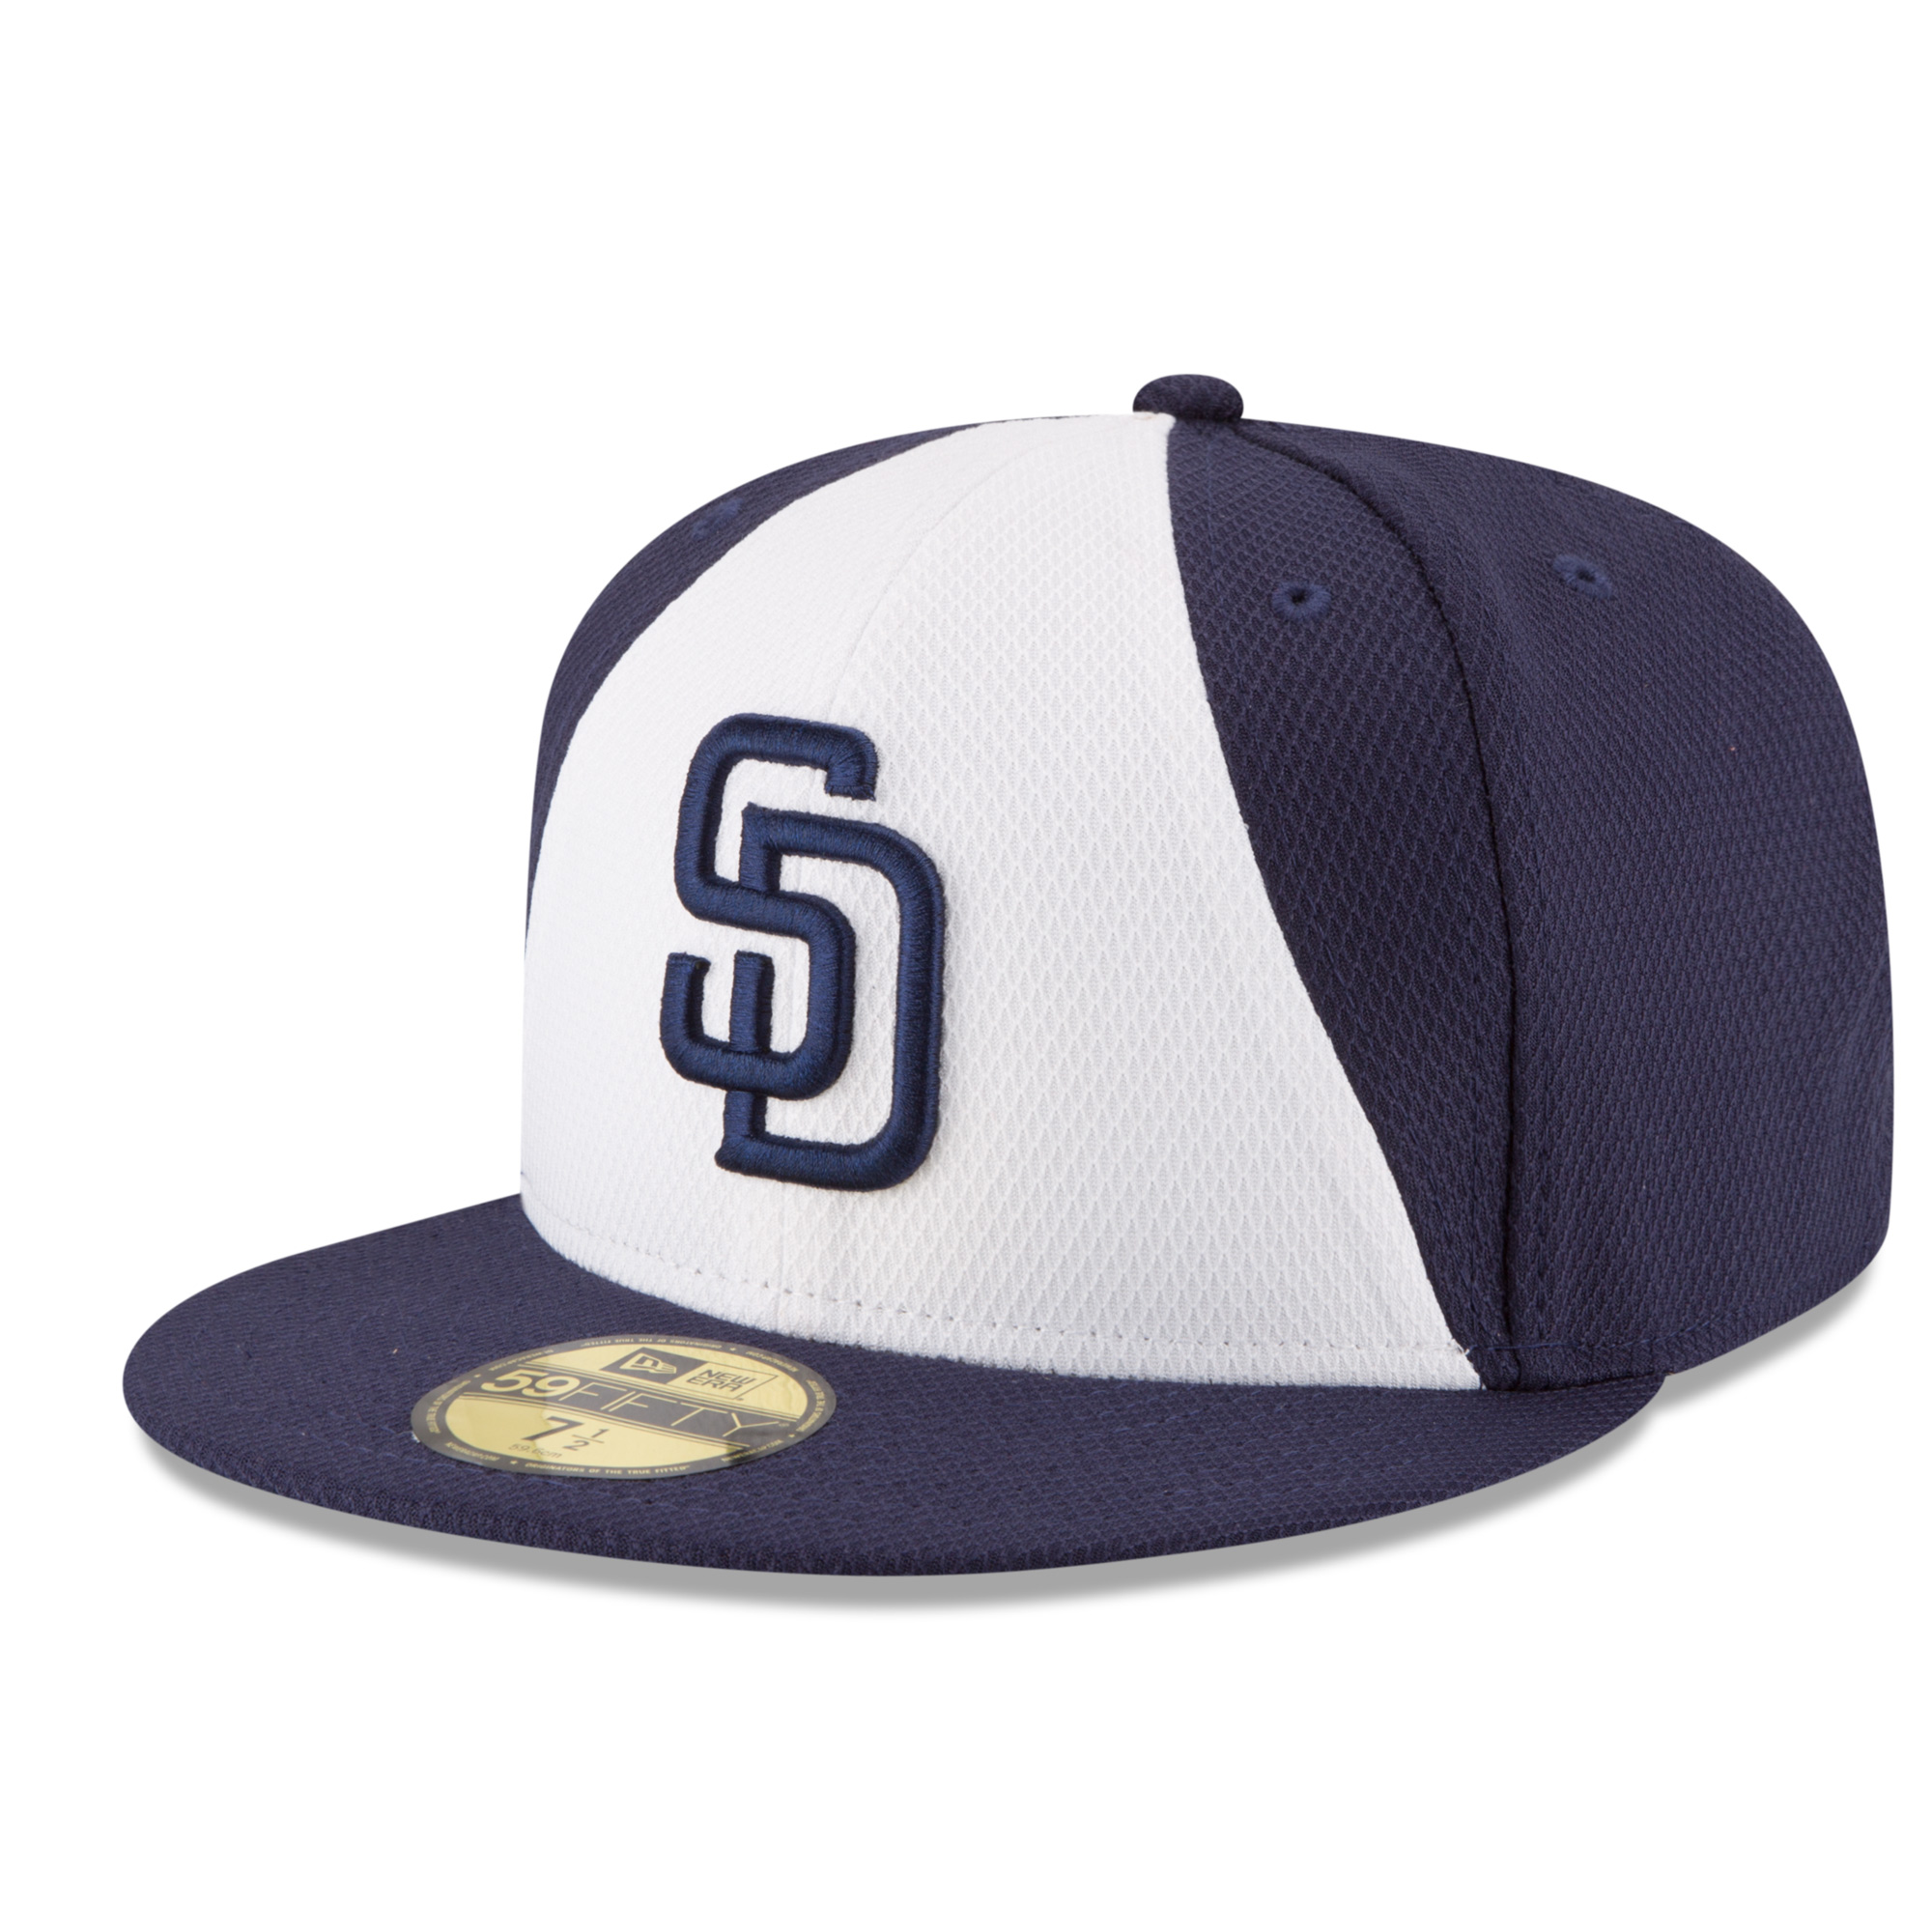 San Diego Padres New Era Game Diamond Era 59FIFTY Fitted Hat - White/Navy